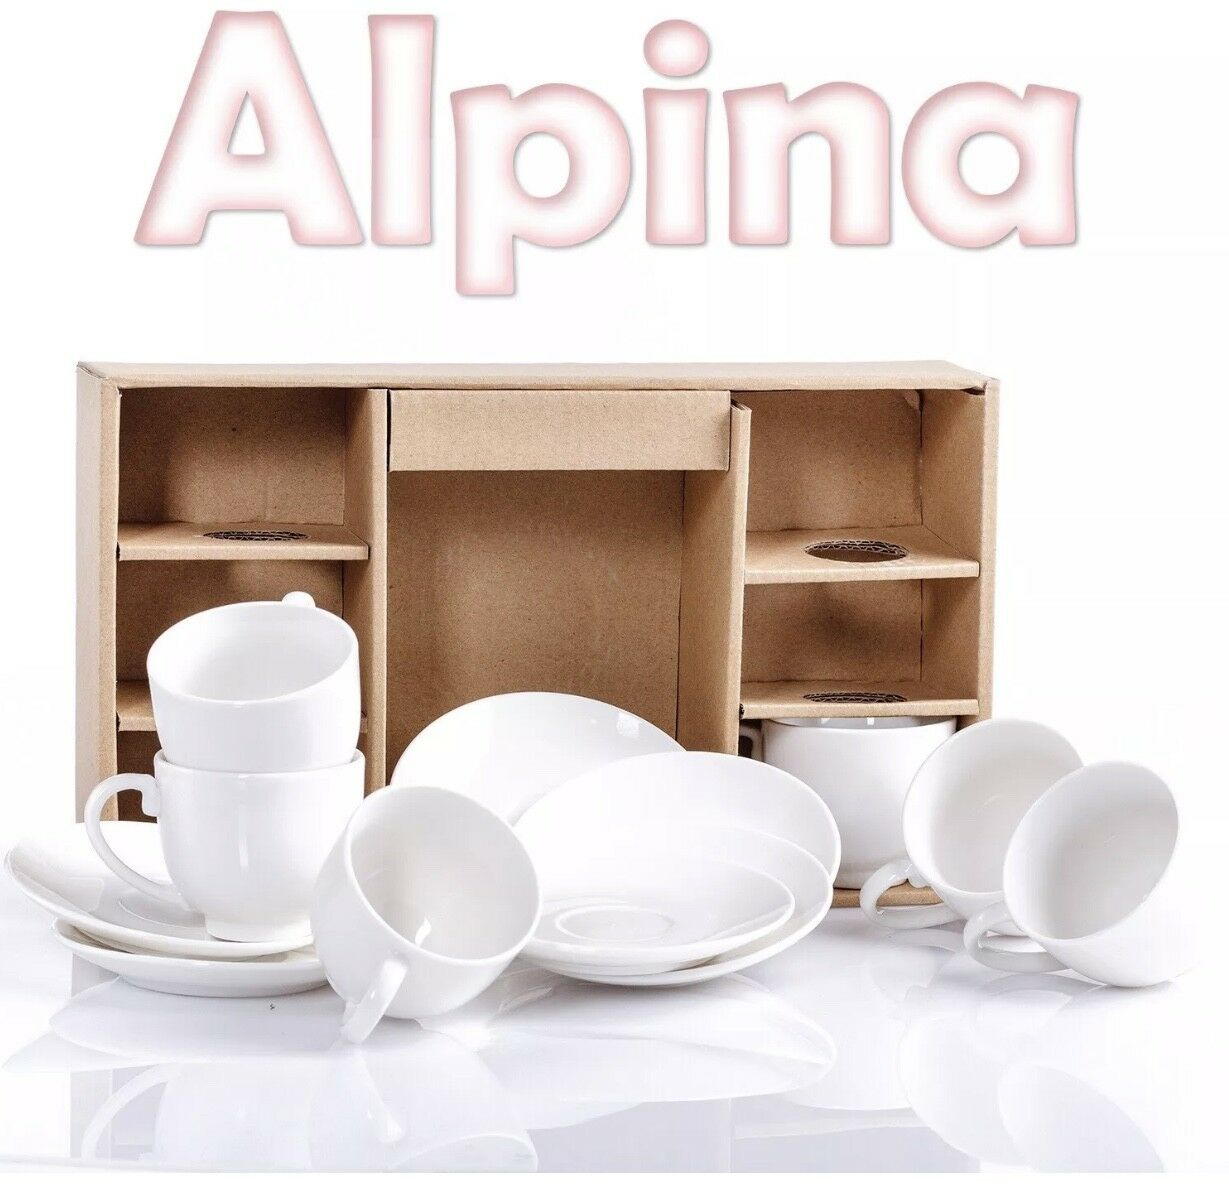 12tlg set alpina wei espresso tassen untertasse porzellan kaffee 75ml eur 12 90 picclick de. Black Bedroom Furniture Sets. Home Design Ideas